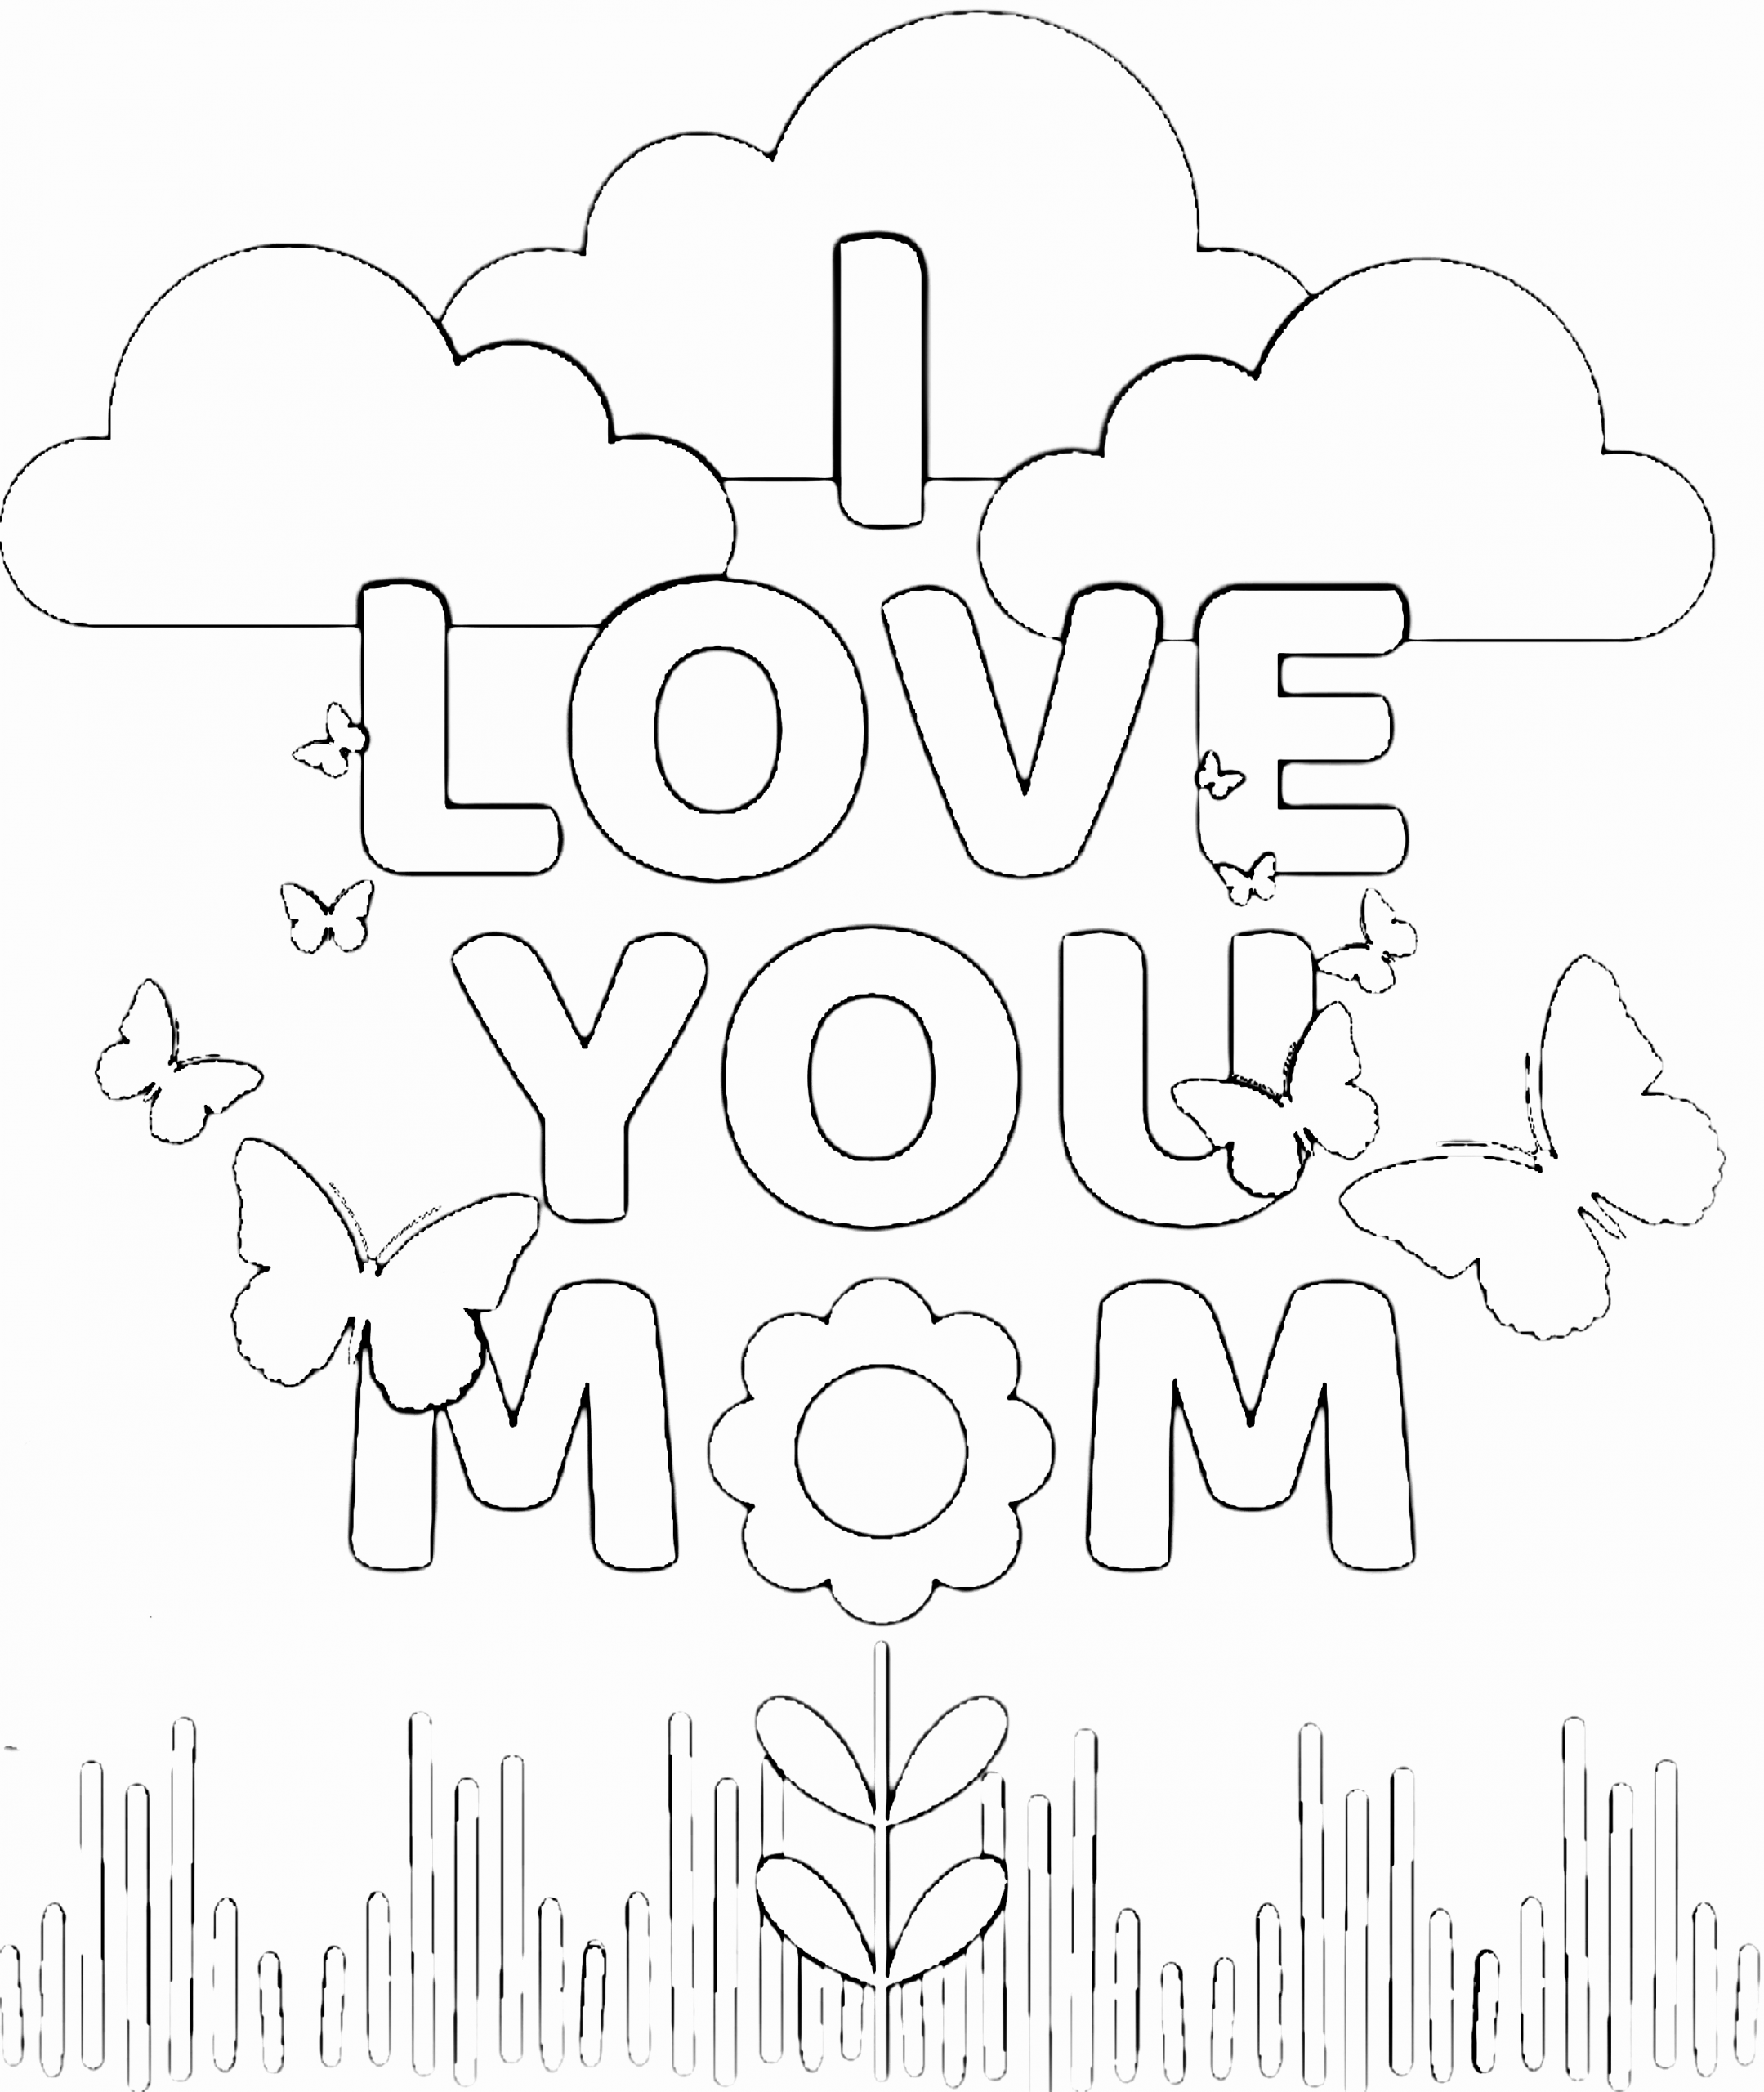 I Love Mom Coloring Page Lovely Free Printable Color Pages For Mom Simple Mom Proje In 2020 Mom Coloring Pages Mothers Day Coloring Pages Free Printable Birthday Cards